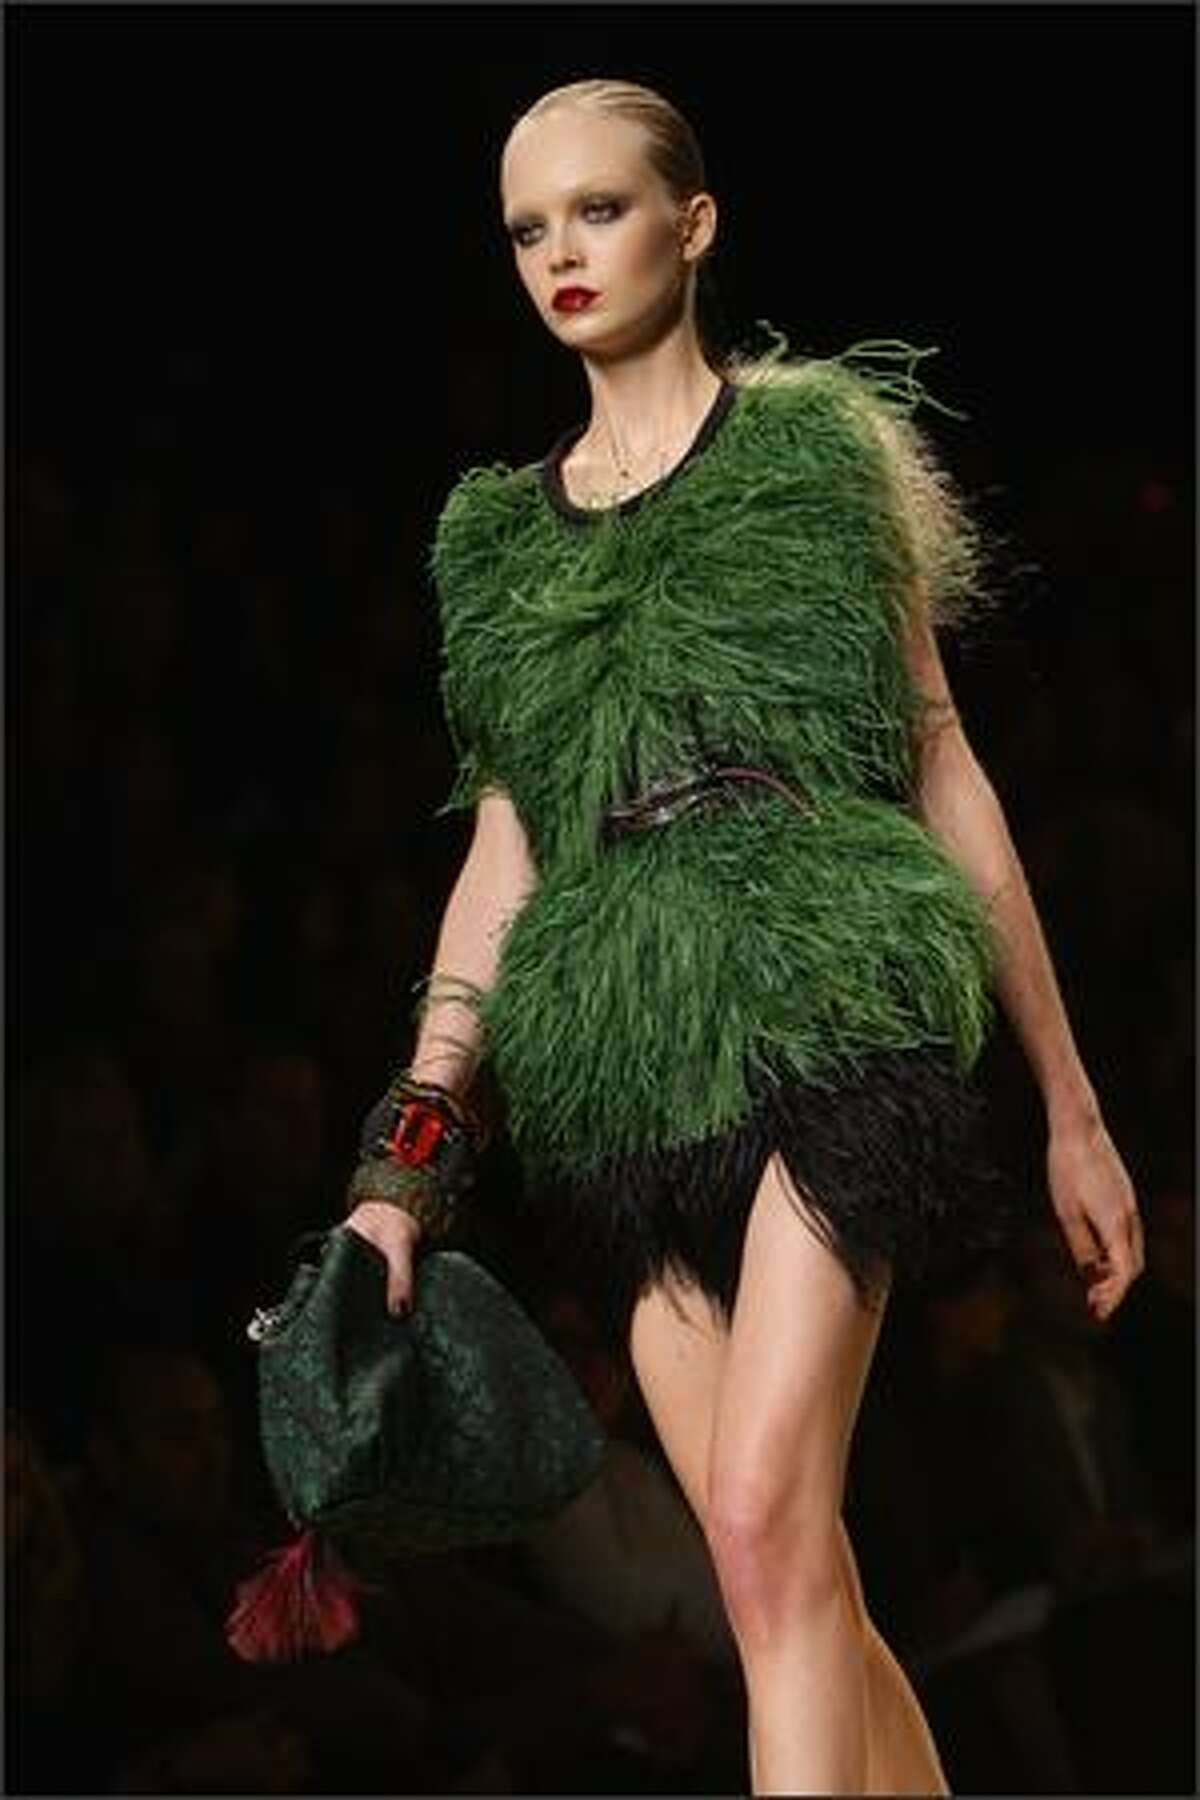 A model presents a creation by designer Marc Jacobs for Louis Vuitton during Paris Fashion Week on Sunday in Paris.